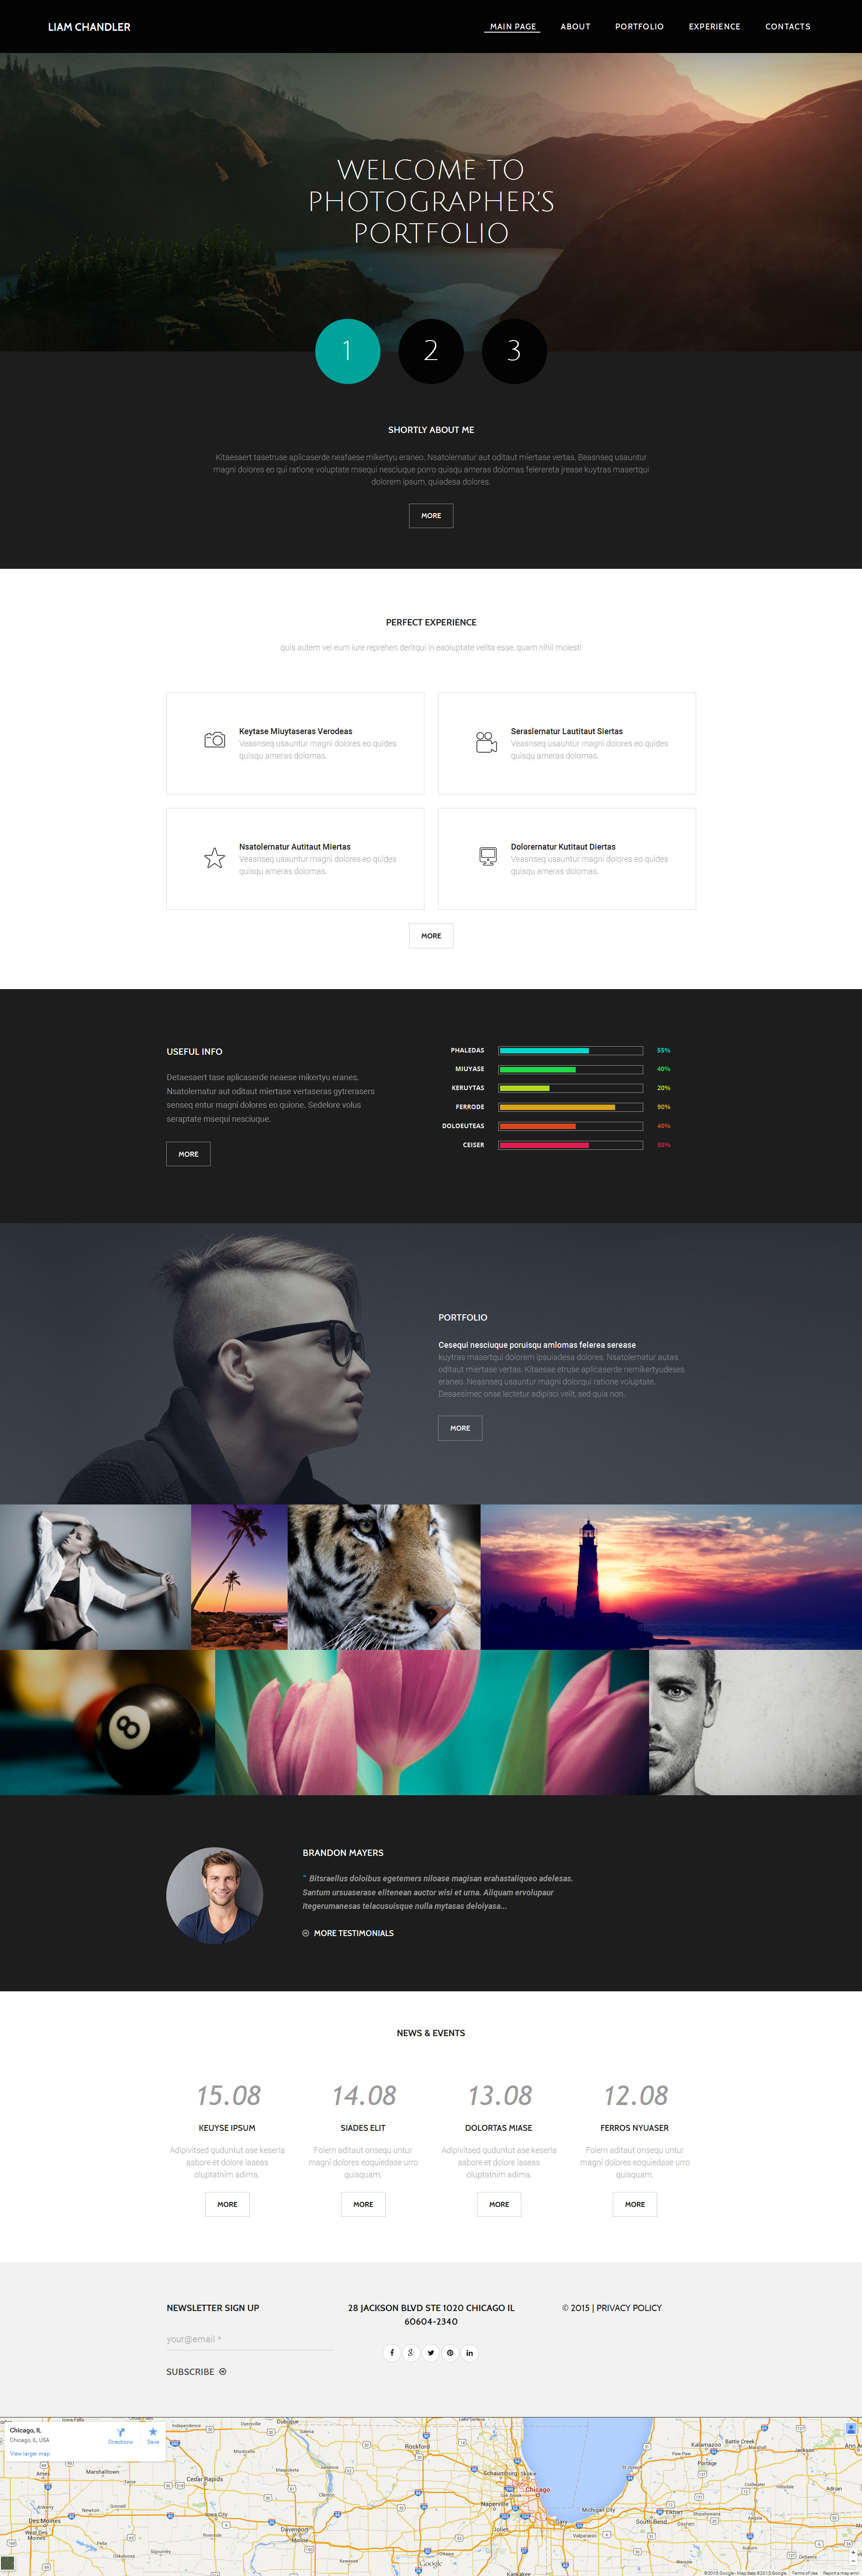 Photographer Portfolio Moto CMS 3 Template